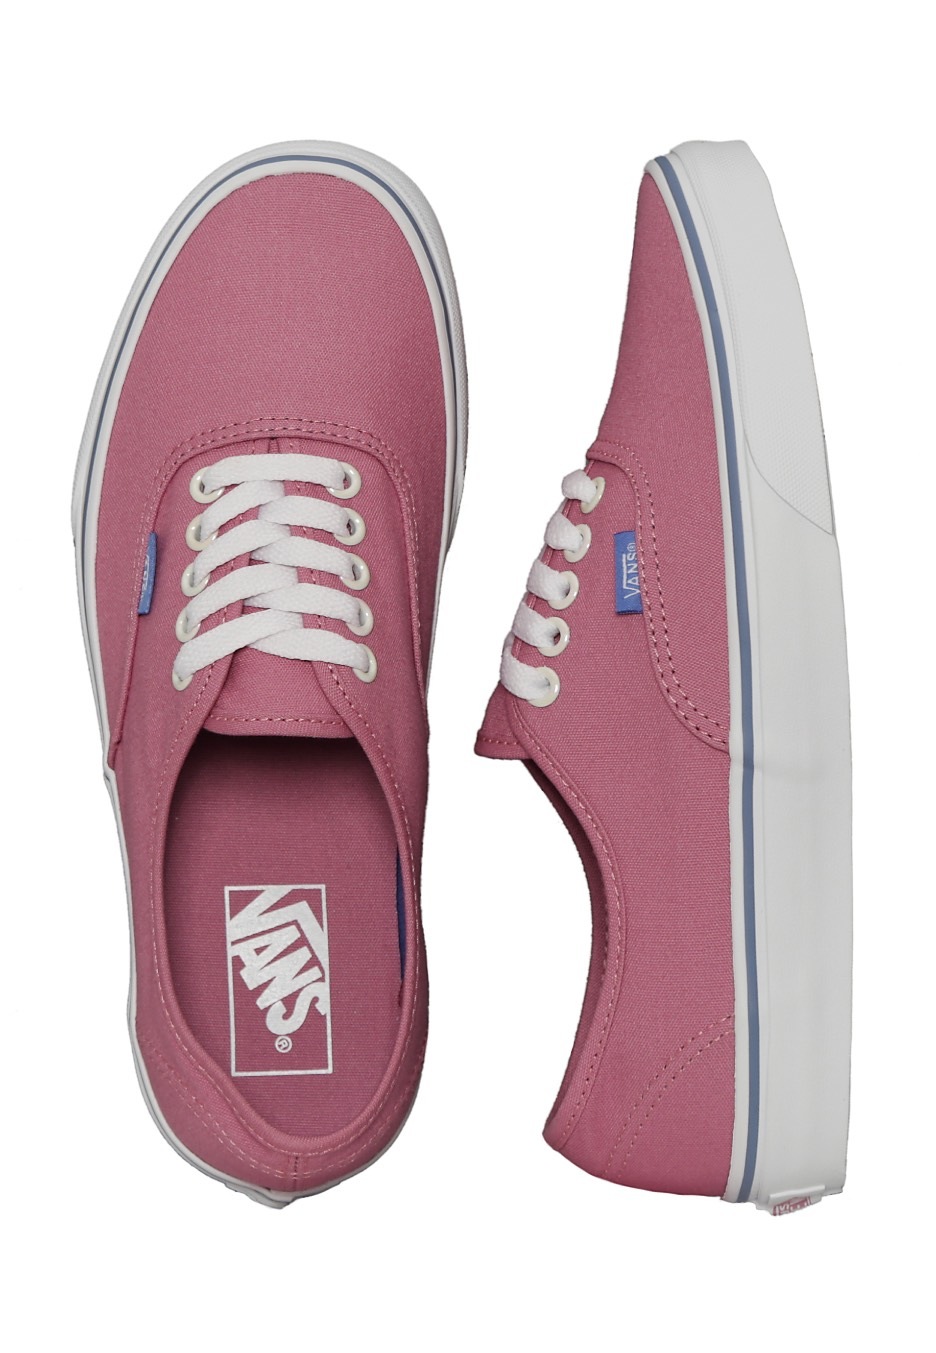 a98e5c85d1cd Vans - Authentic Iridescent Eyelets Wild Rose - Girl Shoes - Impericon.com  Worldwide